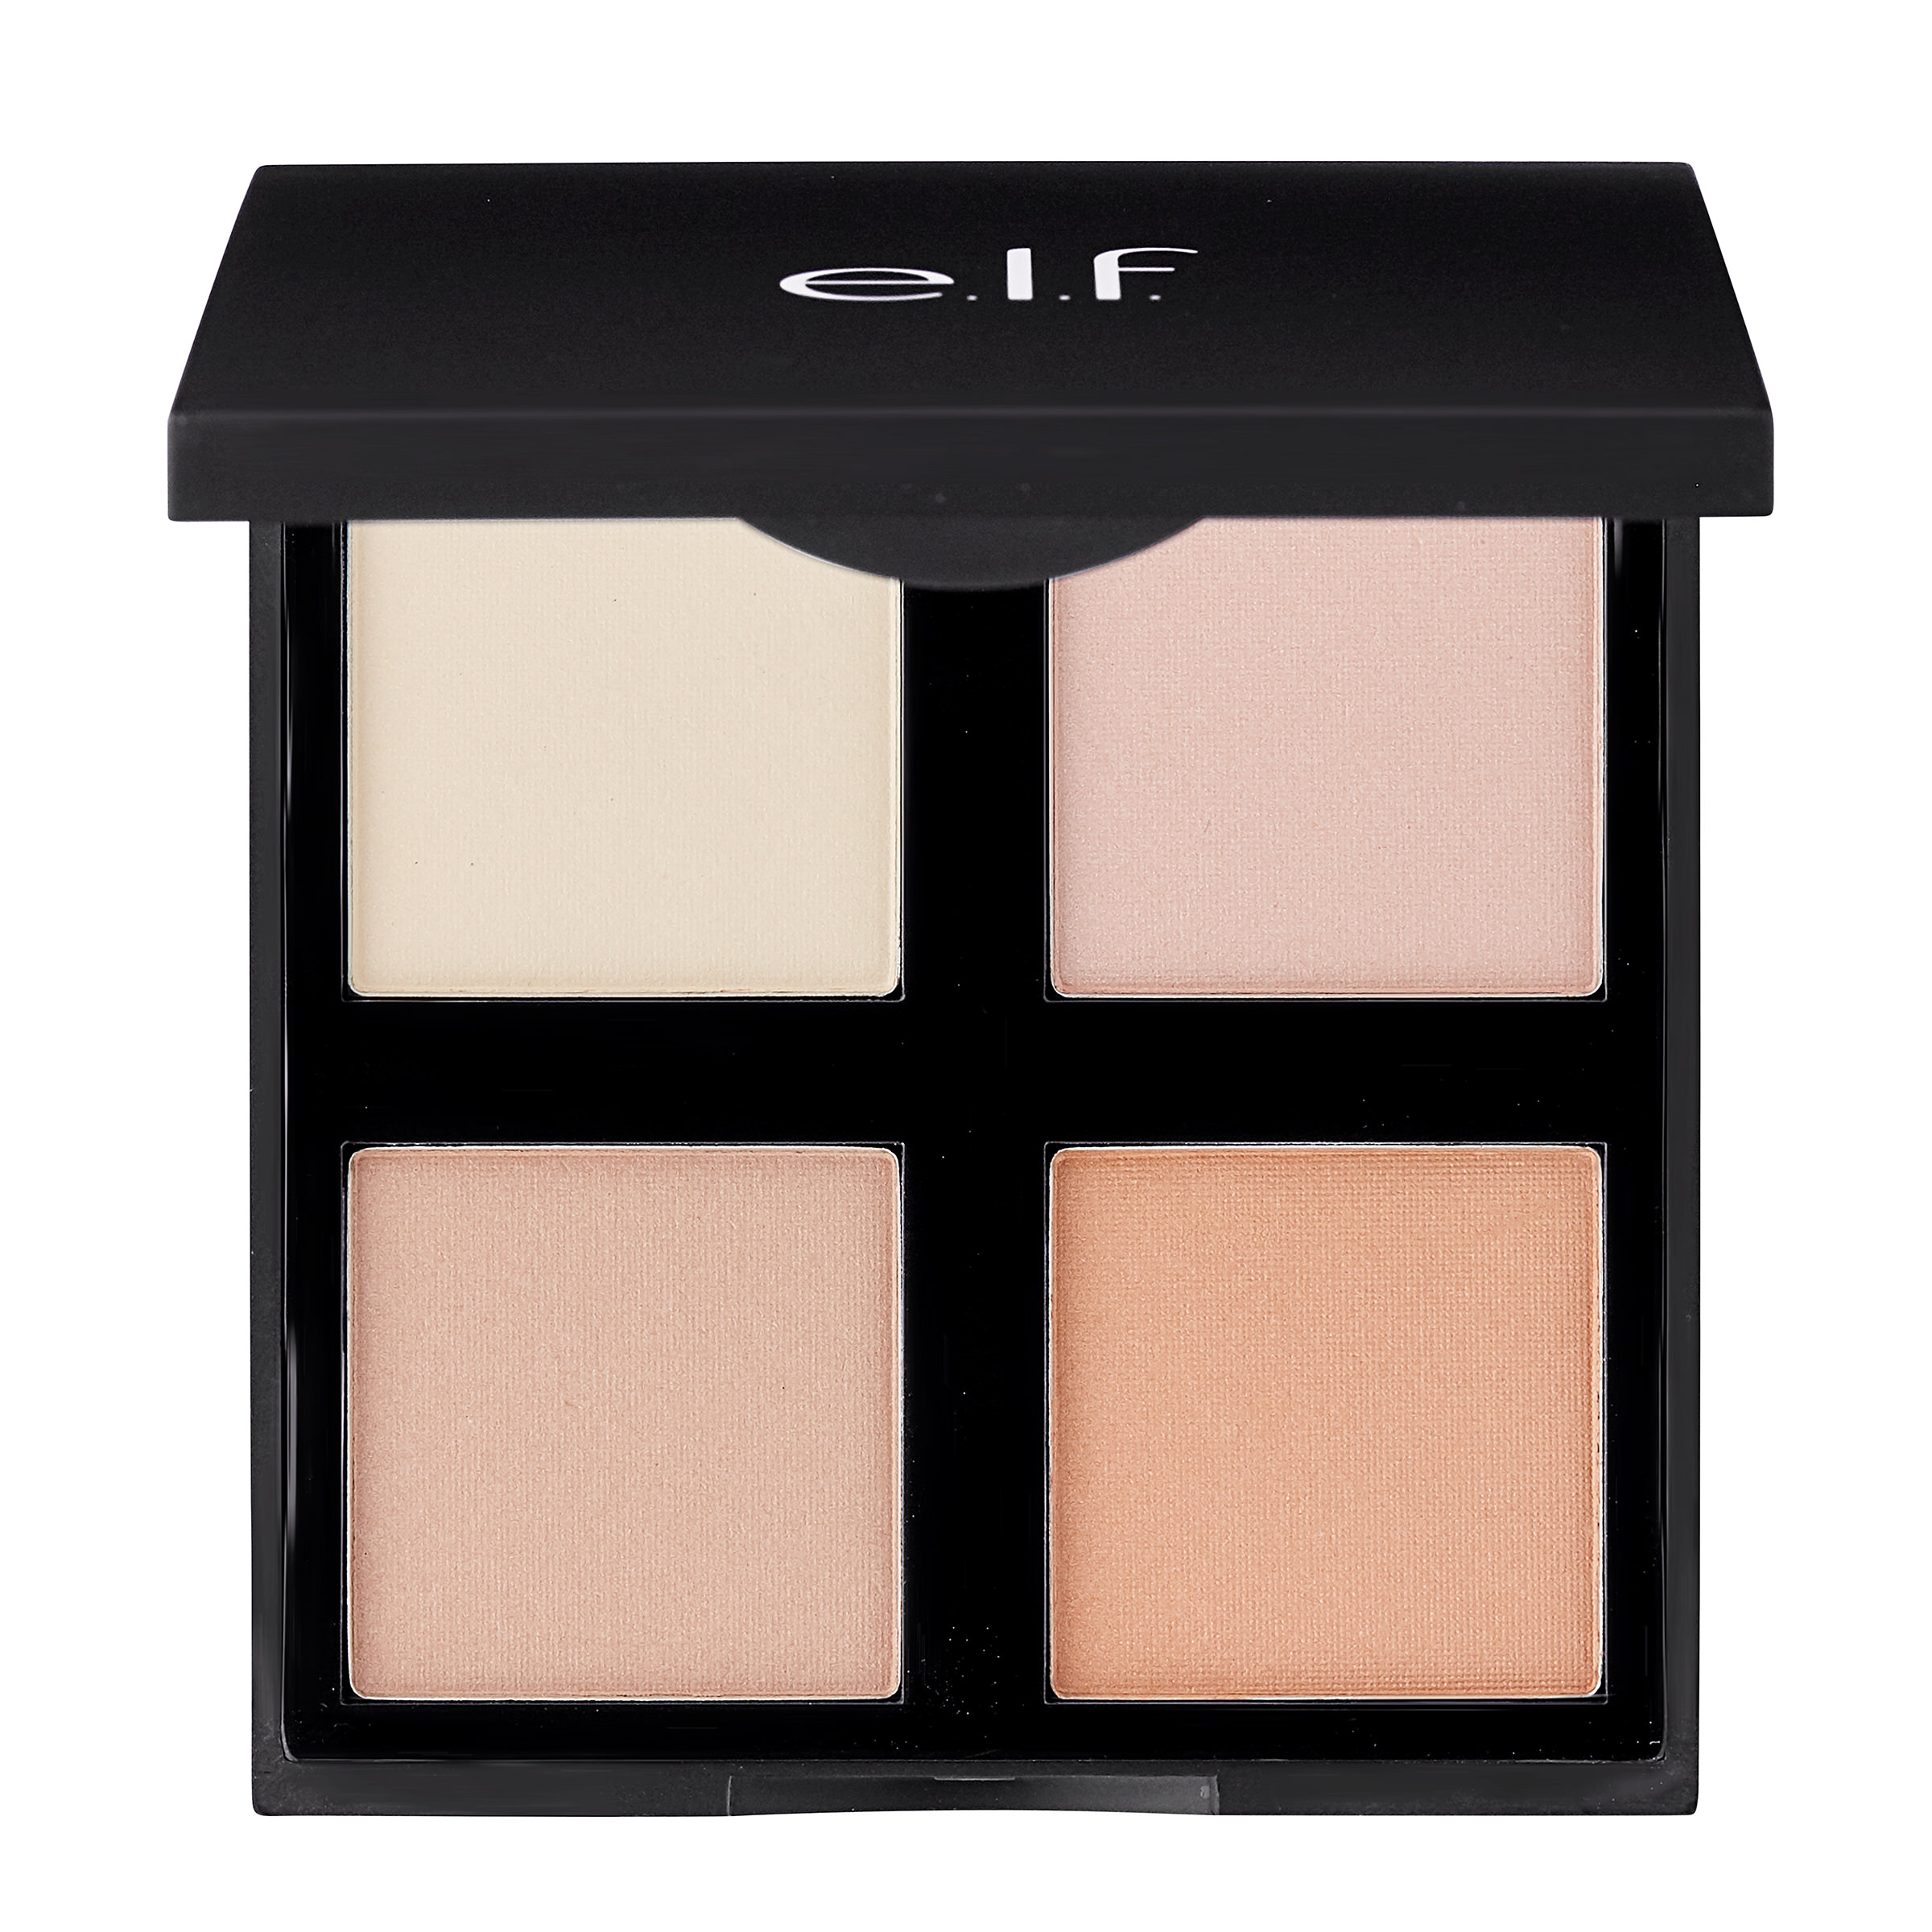 e.l.f. Illuminating Quad Palette